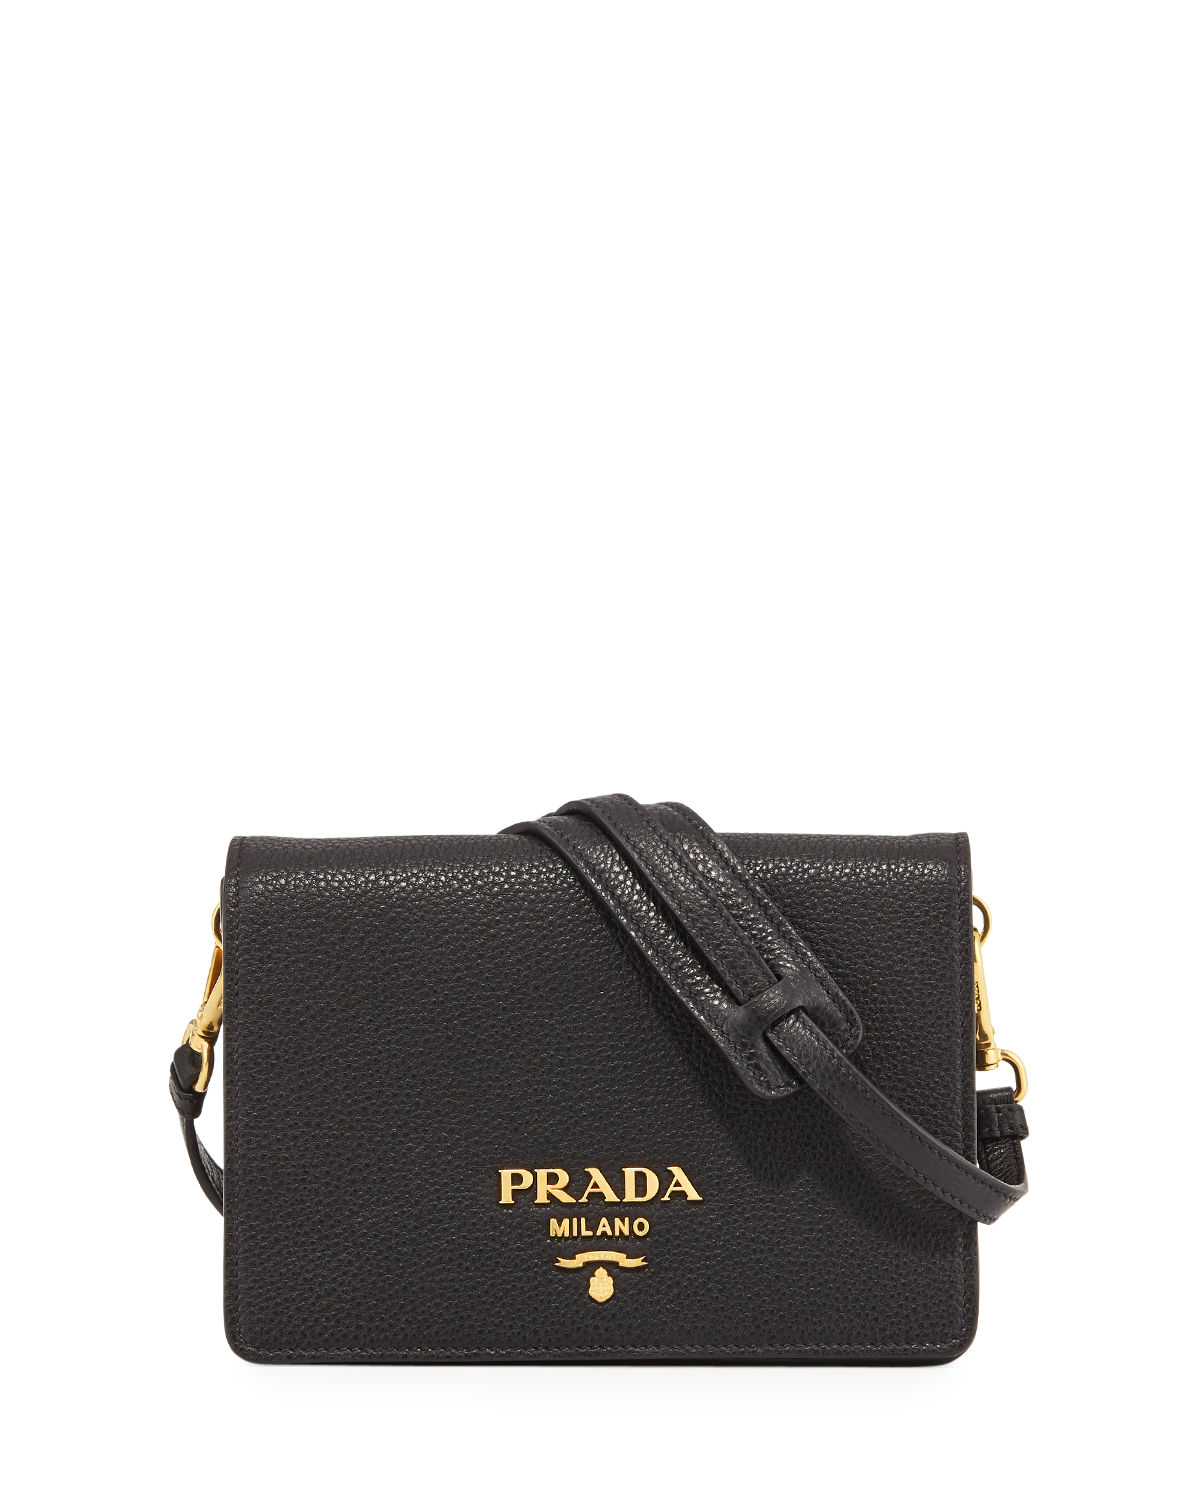 a4adce4ee546c0 Prada Daino Small Leather Shoulder Bag | Neiman Marcus